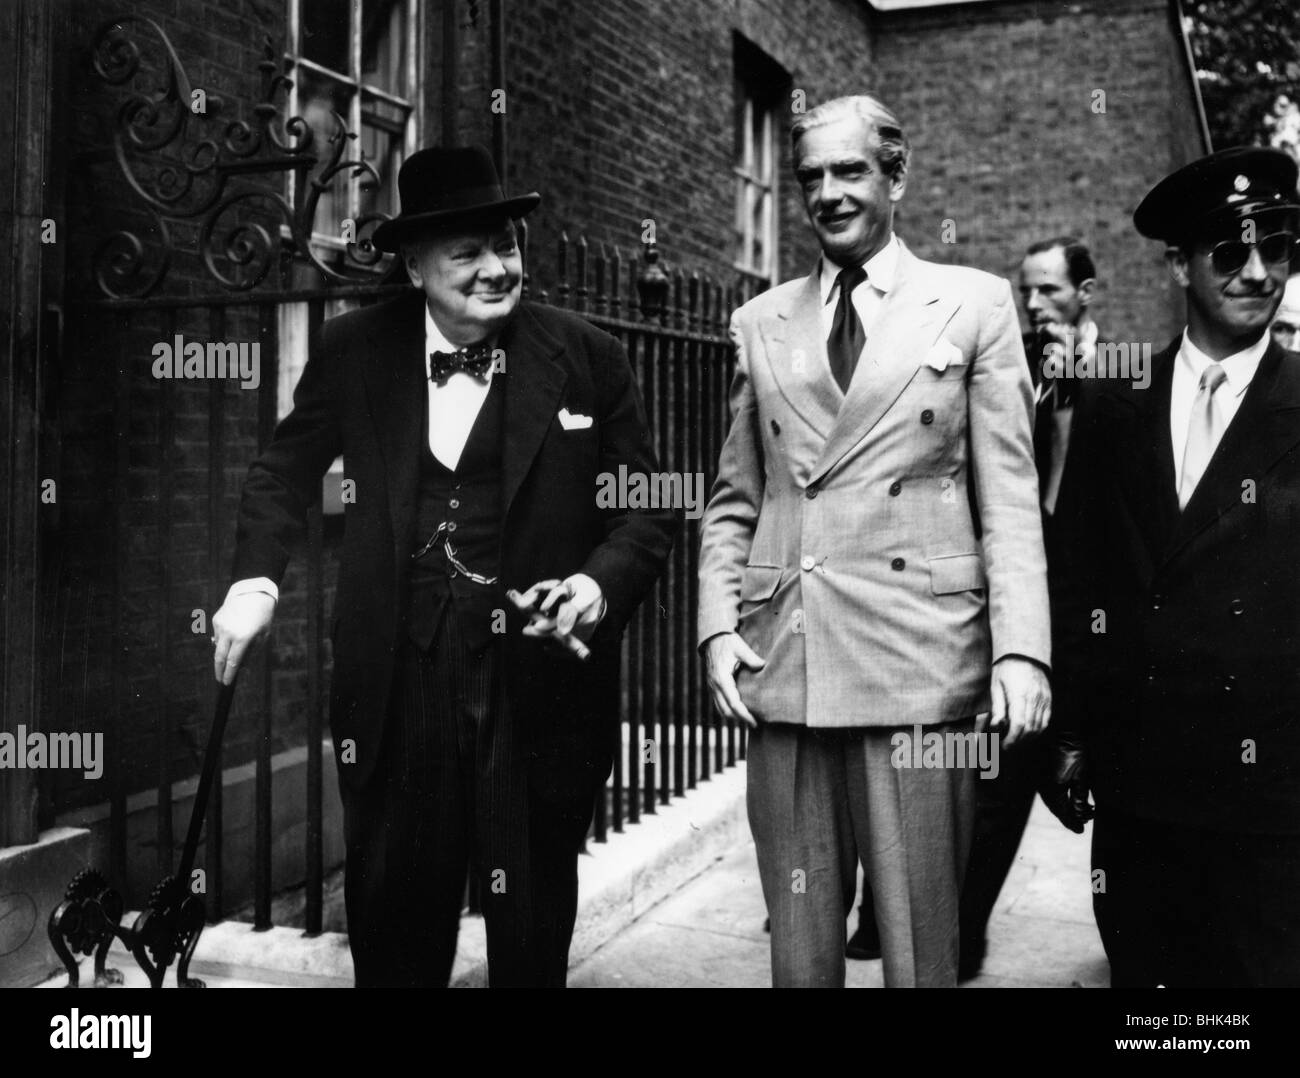 Sir Winston Churchill (1874-1965) and Anthony Eden (1897-1977), c1955. - Stock Image